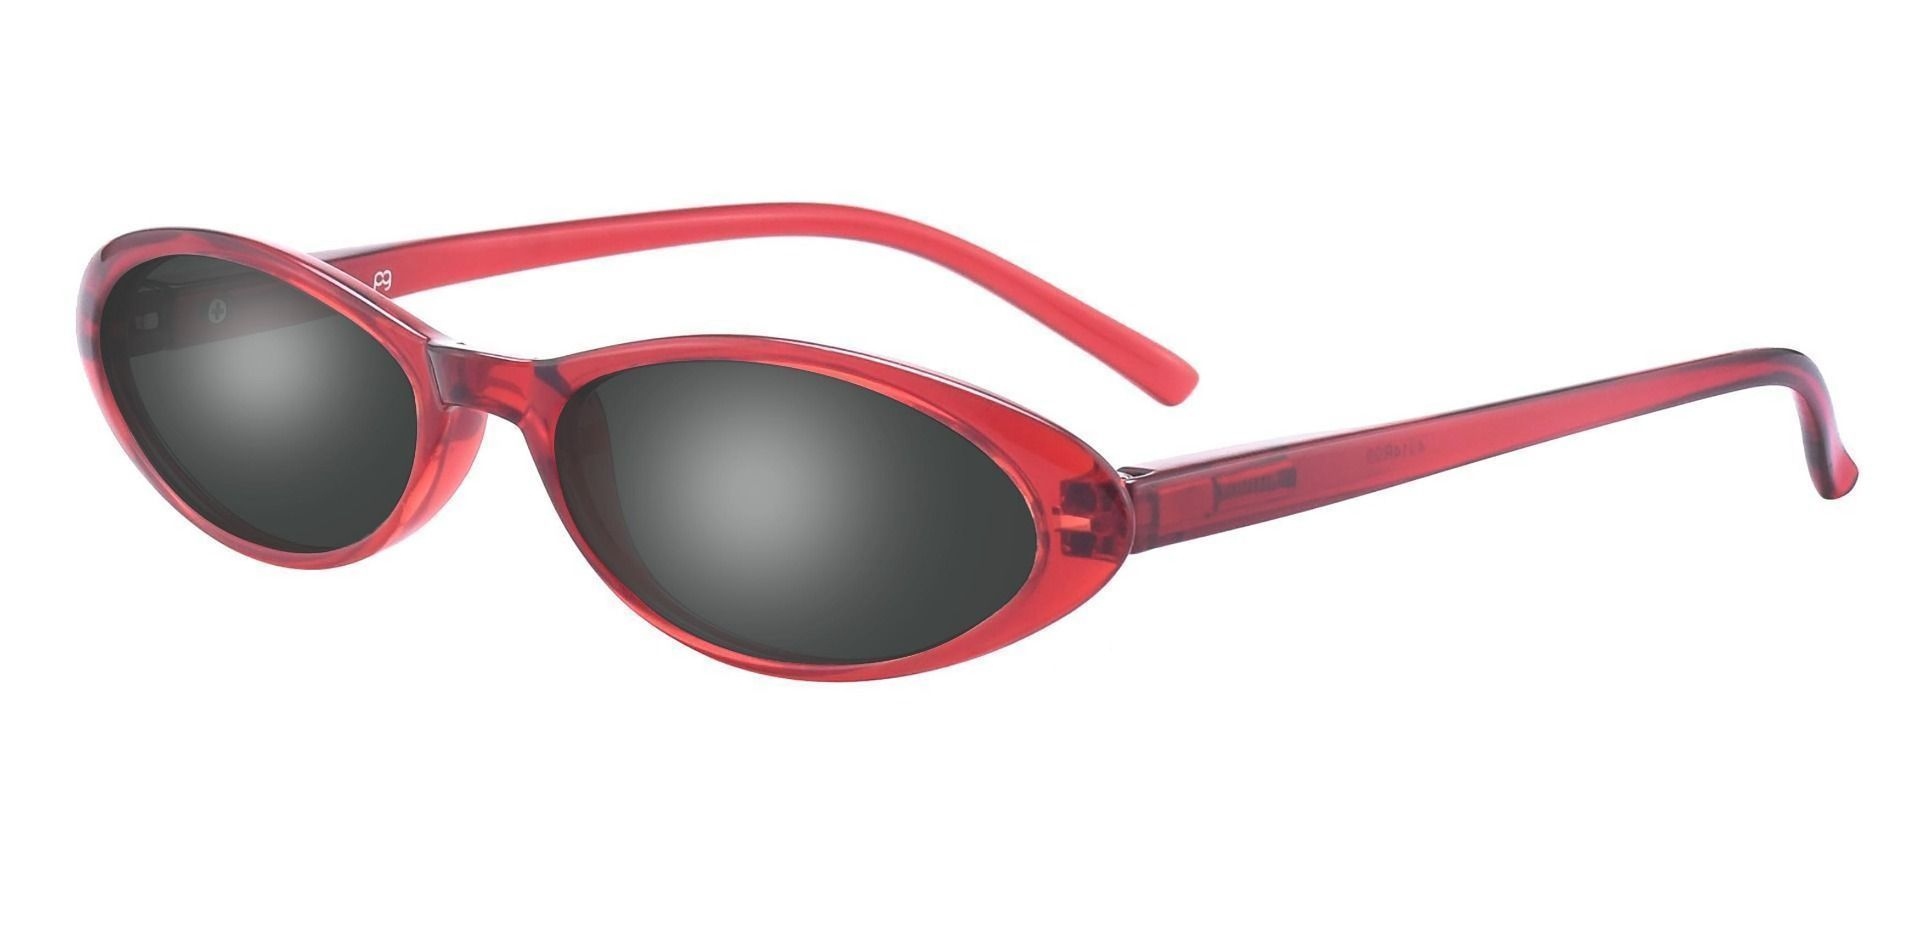 Darcie Cat-Eye Single Vision Sunglasses -  Red Frame With Gray Lenses